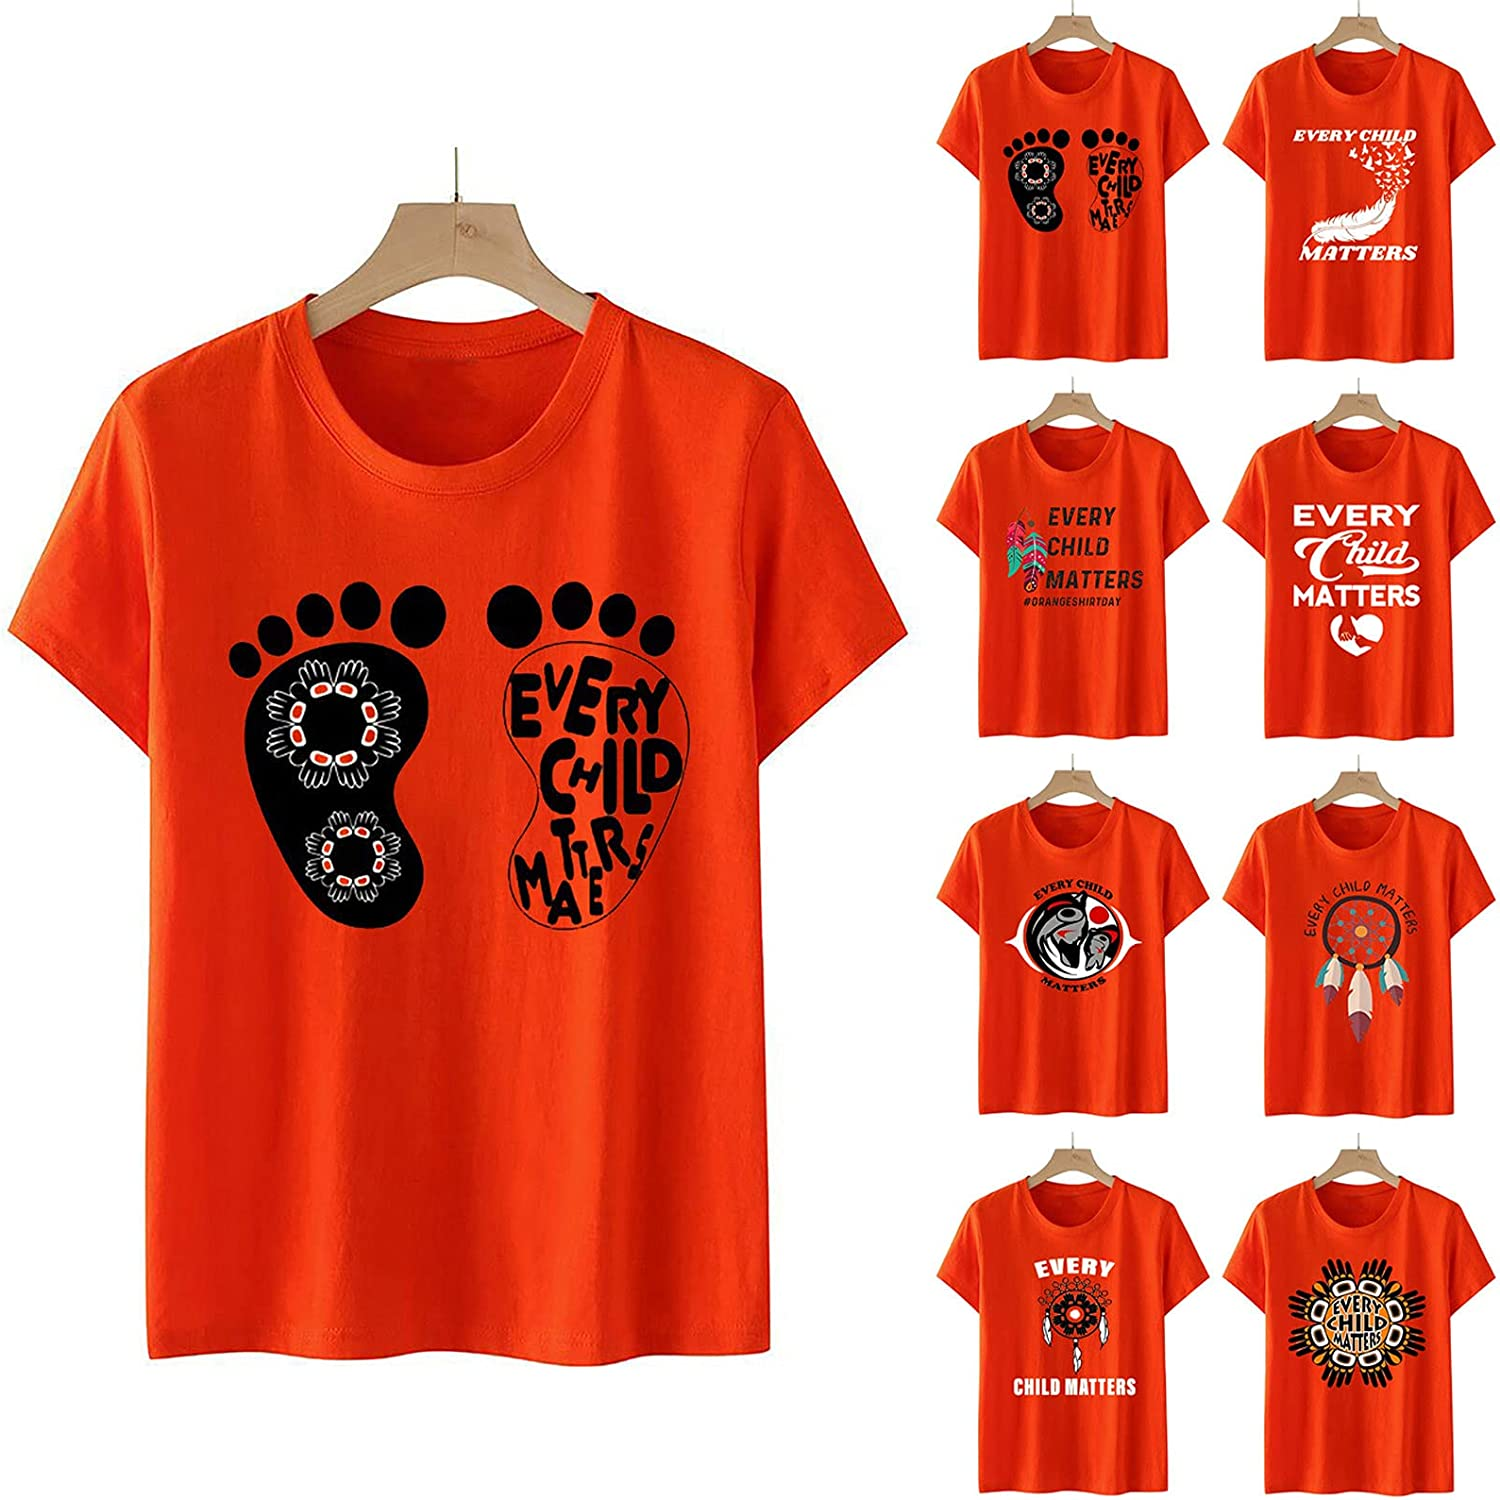 Every Child Matters T-Shirt,Orange Shirt Day,Unisex Residential Schools Tees Shirt Comfy Summer Tops